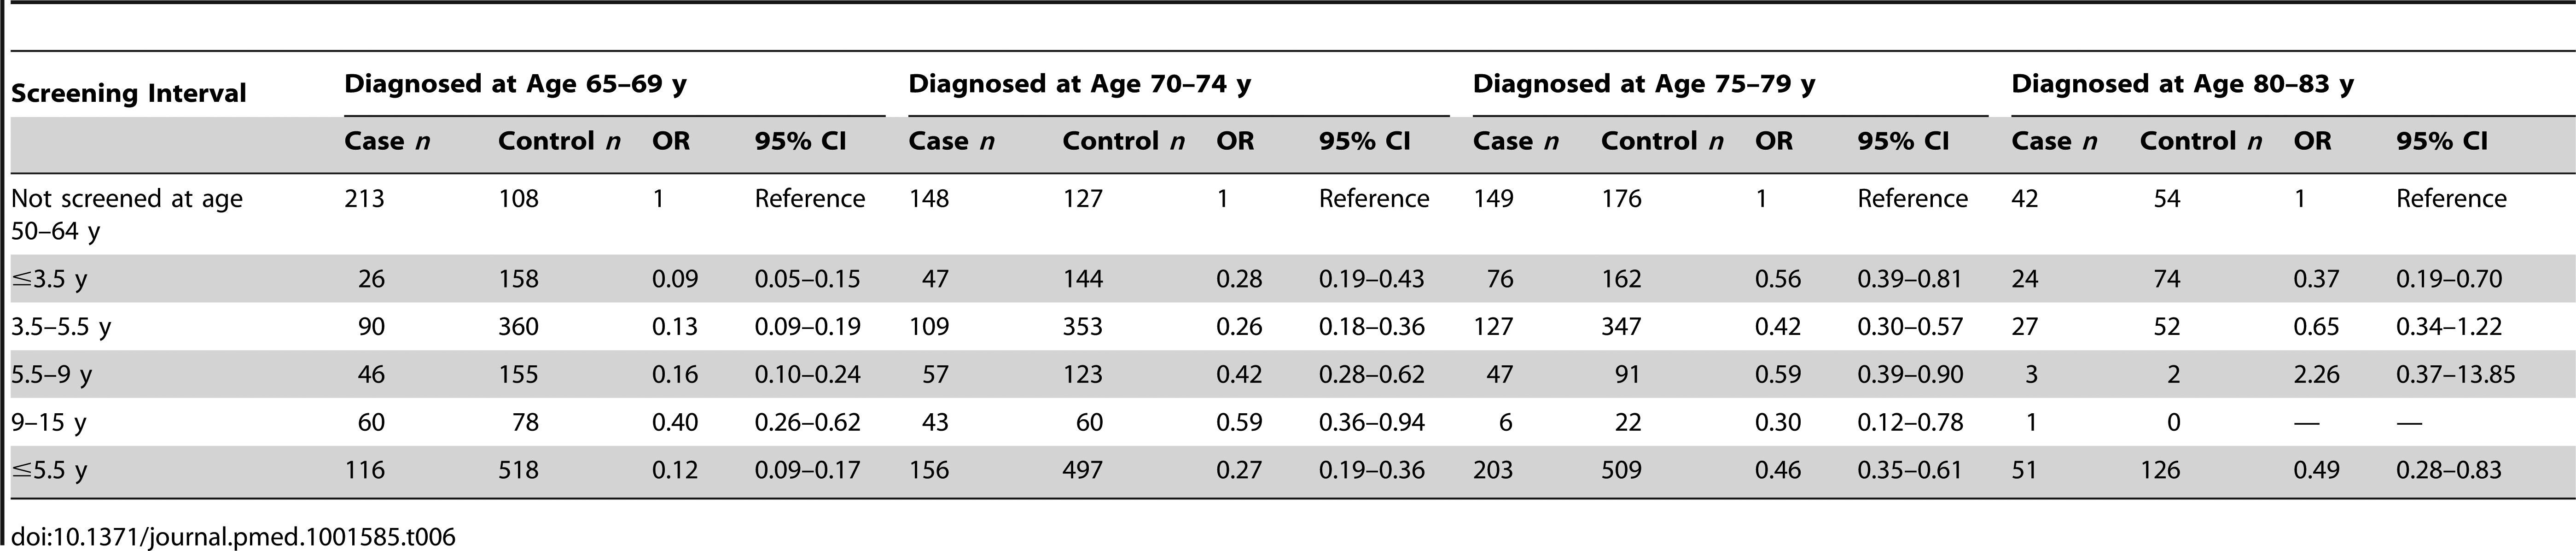 Odds ratios of cervical cancer by maximum screening interval at age 50–64 y relative to no screening, by age at diagnosis.